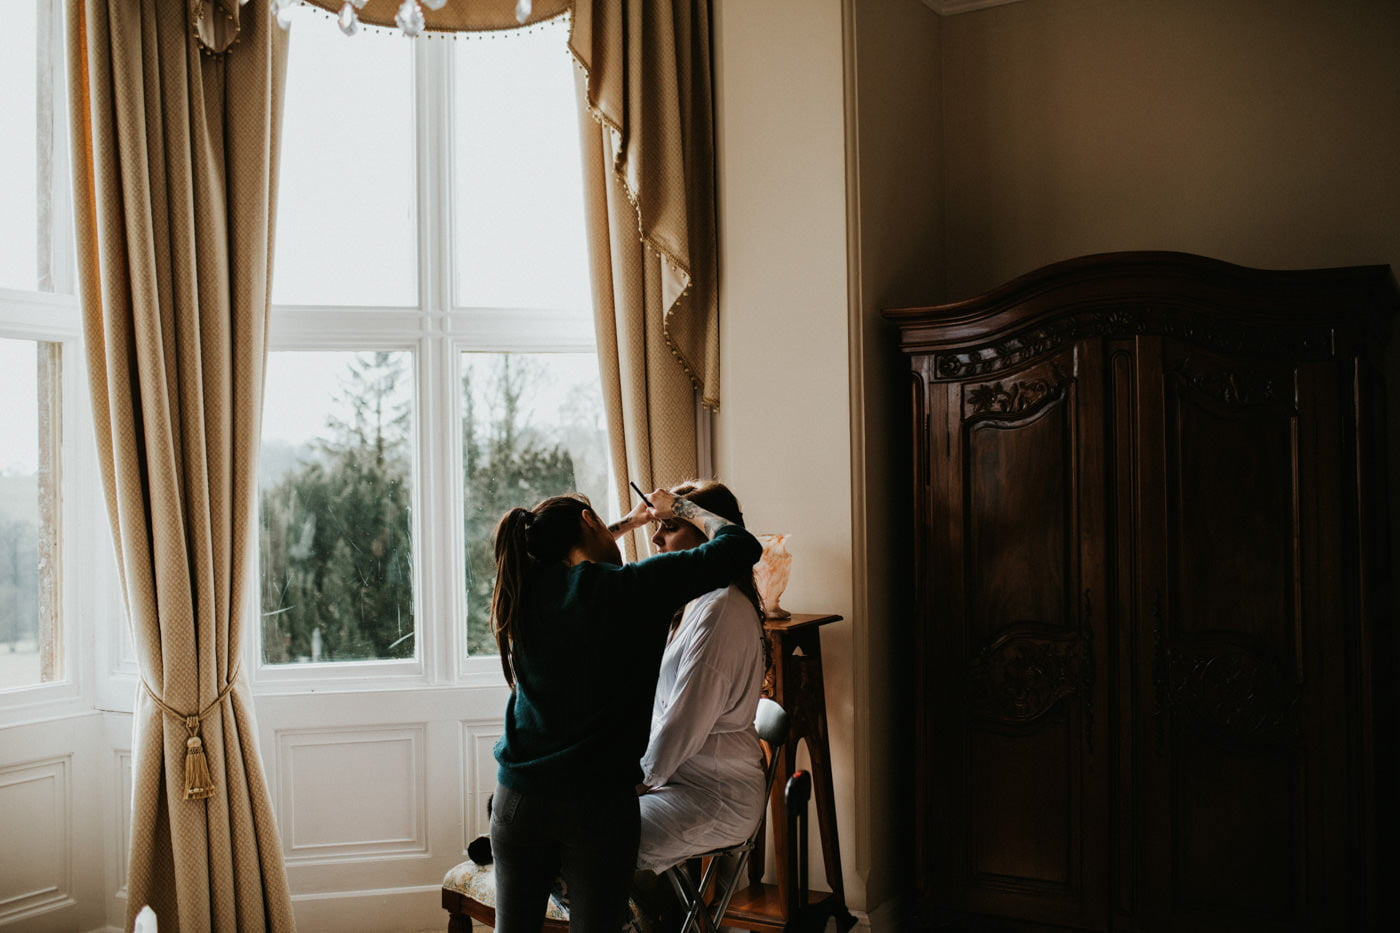 Chloe and Lewis, Orchardleigh House, Somerset 26